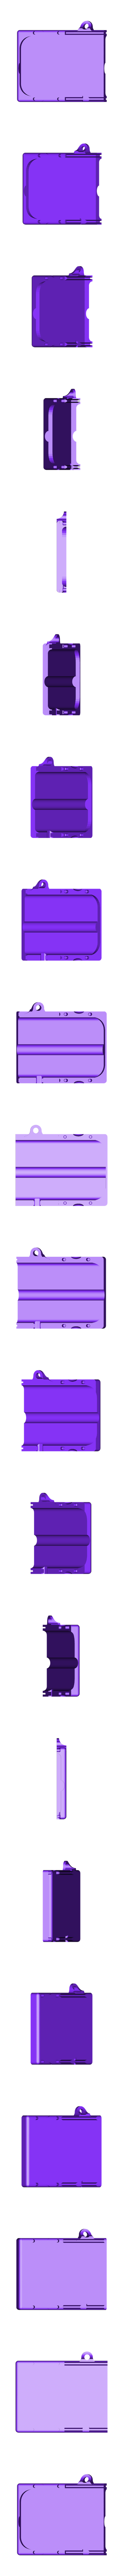 R_Upper_Locking.stl Download free STL file Switchbox - Travel Case for Nintendo Switch • 3D printable object, Zippityboomba